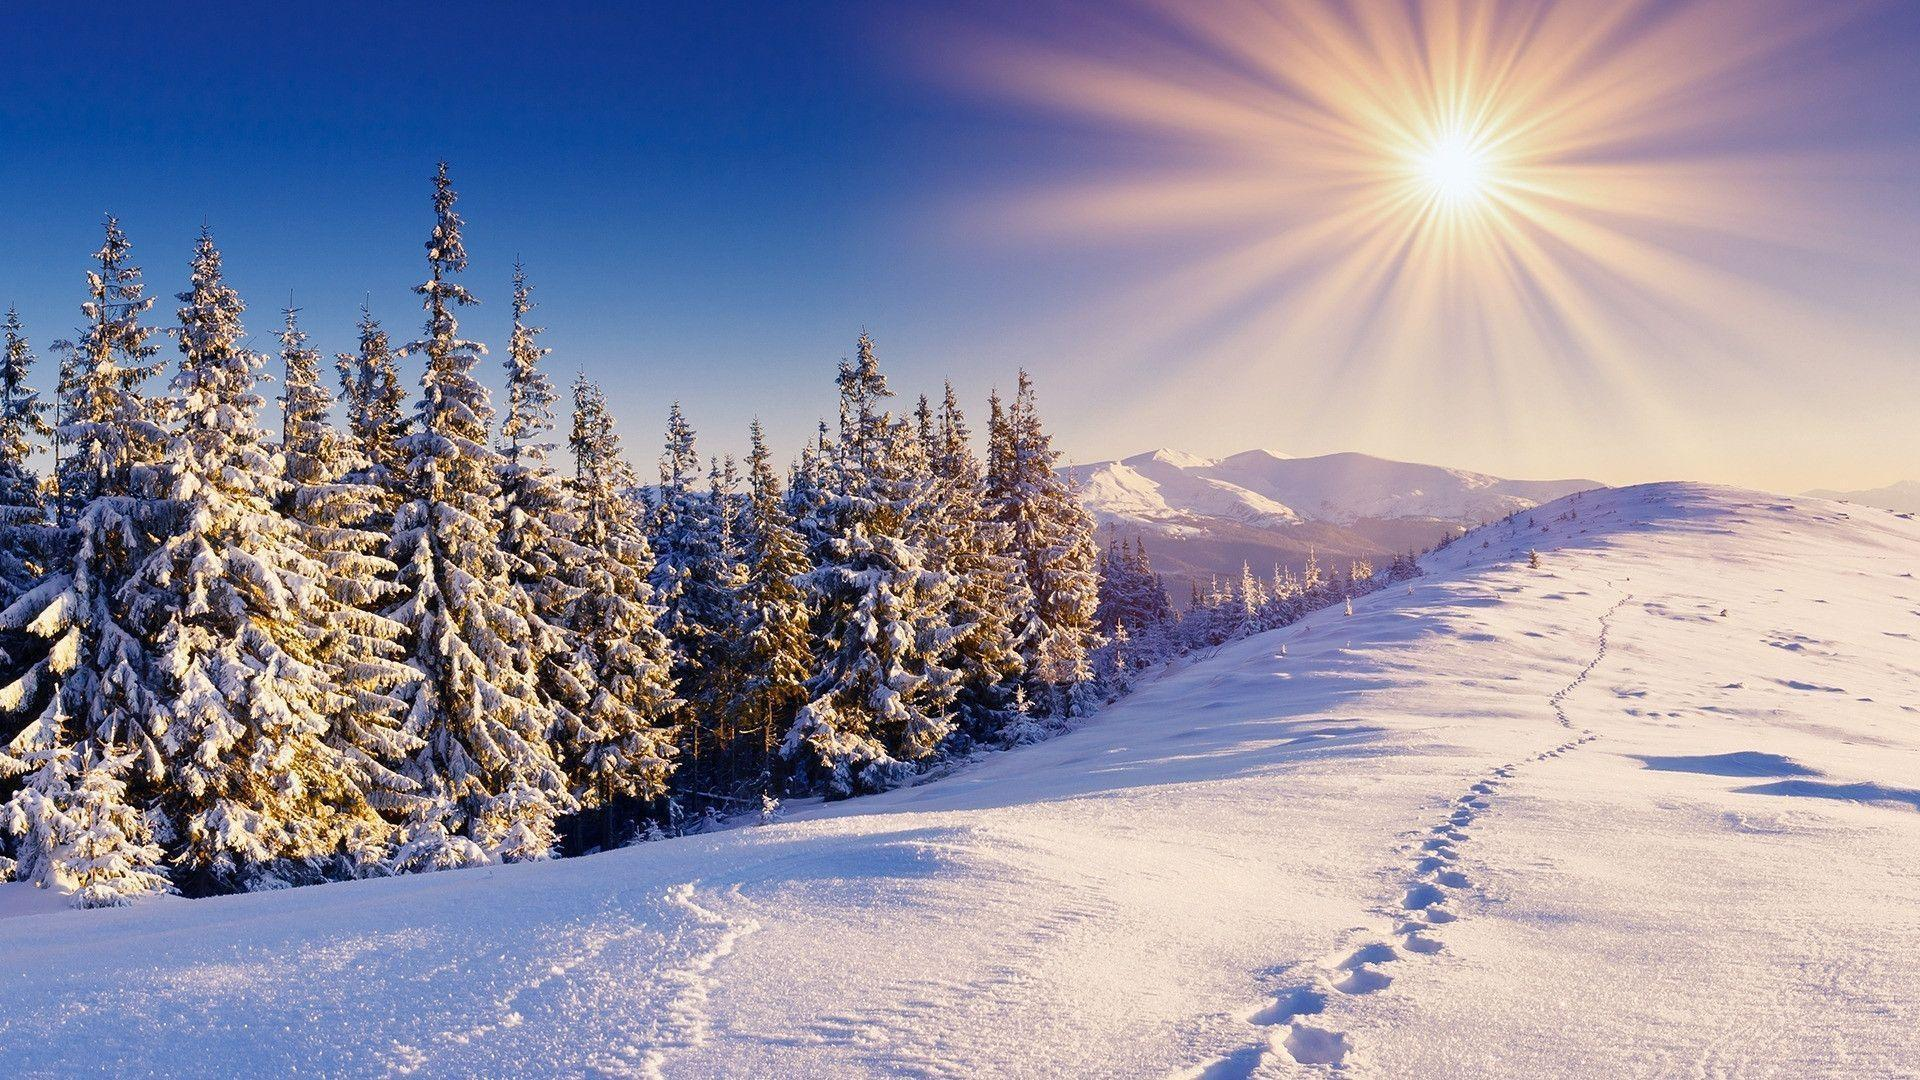 Download Cold Rays Winter Sun Nature Iphone Ipad Wallpaper ...